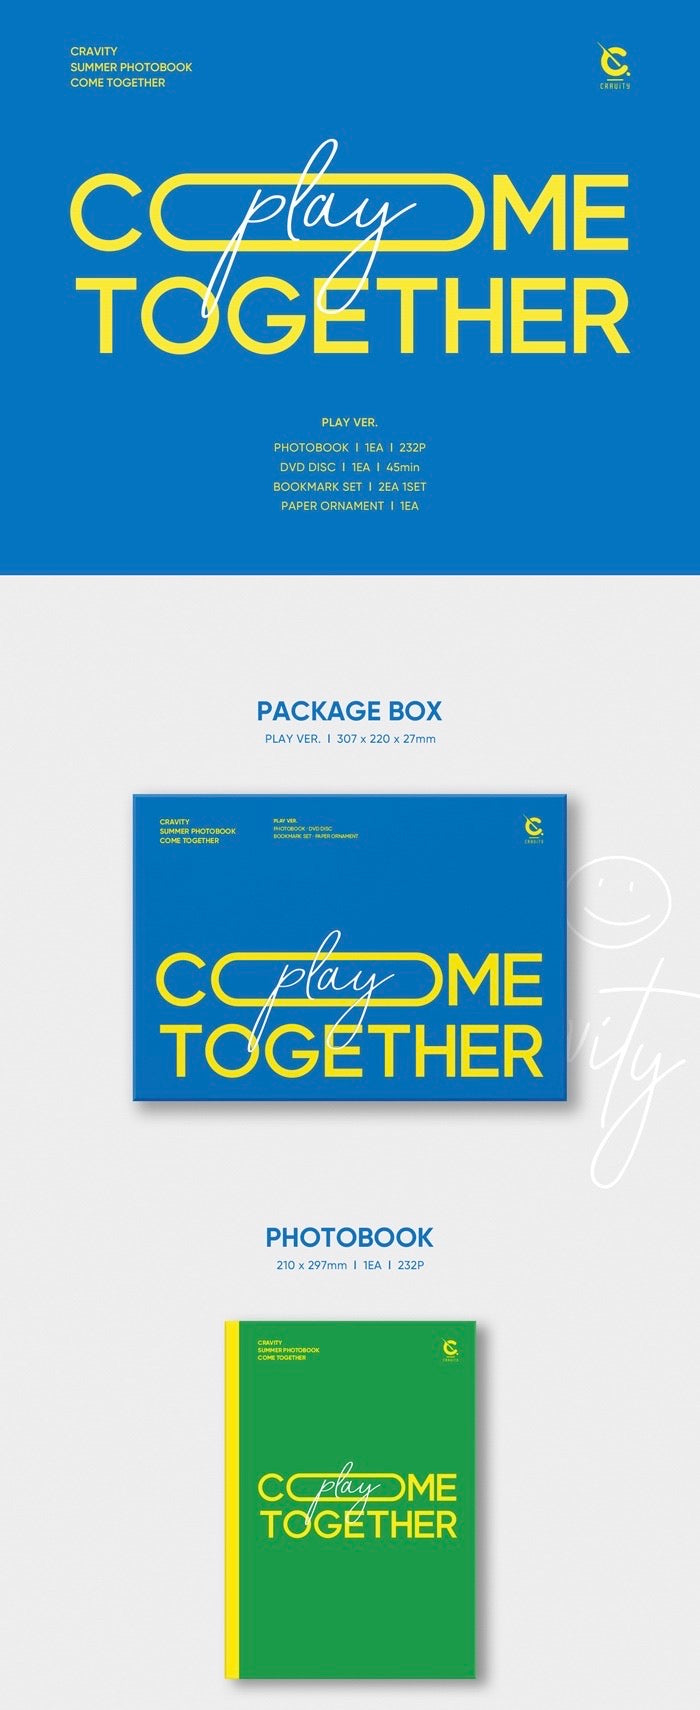 Cravity - Summer Photobook - Come Together - Play Version - Pre-Order - J-Store Online